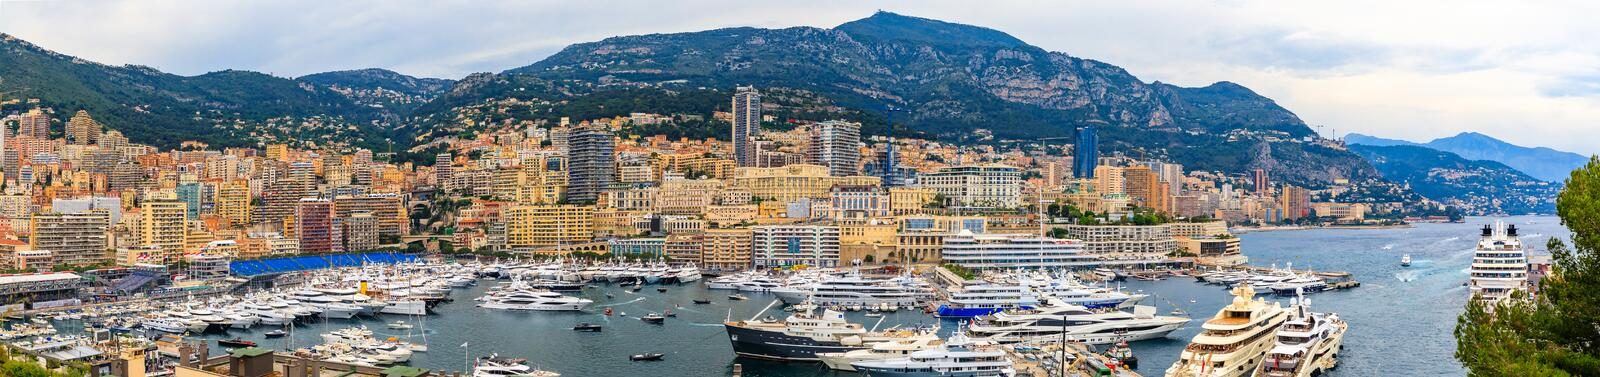 Monte Carlo panorama with luxury yachts and grand stands by the in harbor for Grand Prix F1 race in Monaco, Cote d'Azur. Monte Carlo city panorama with royalty free stock images